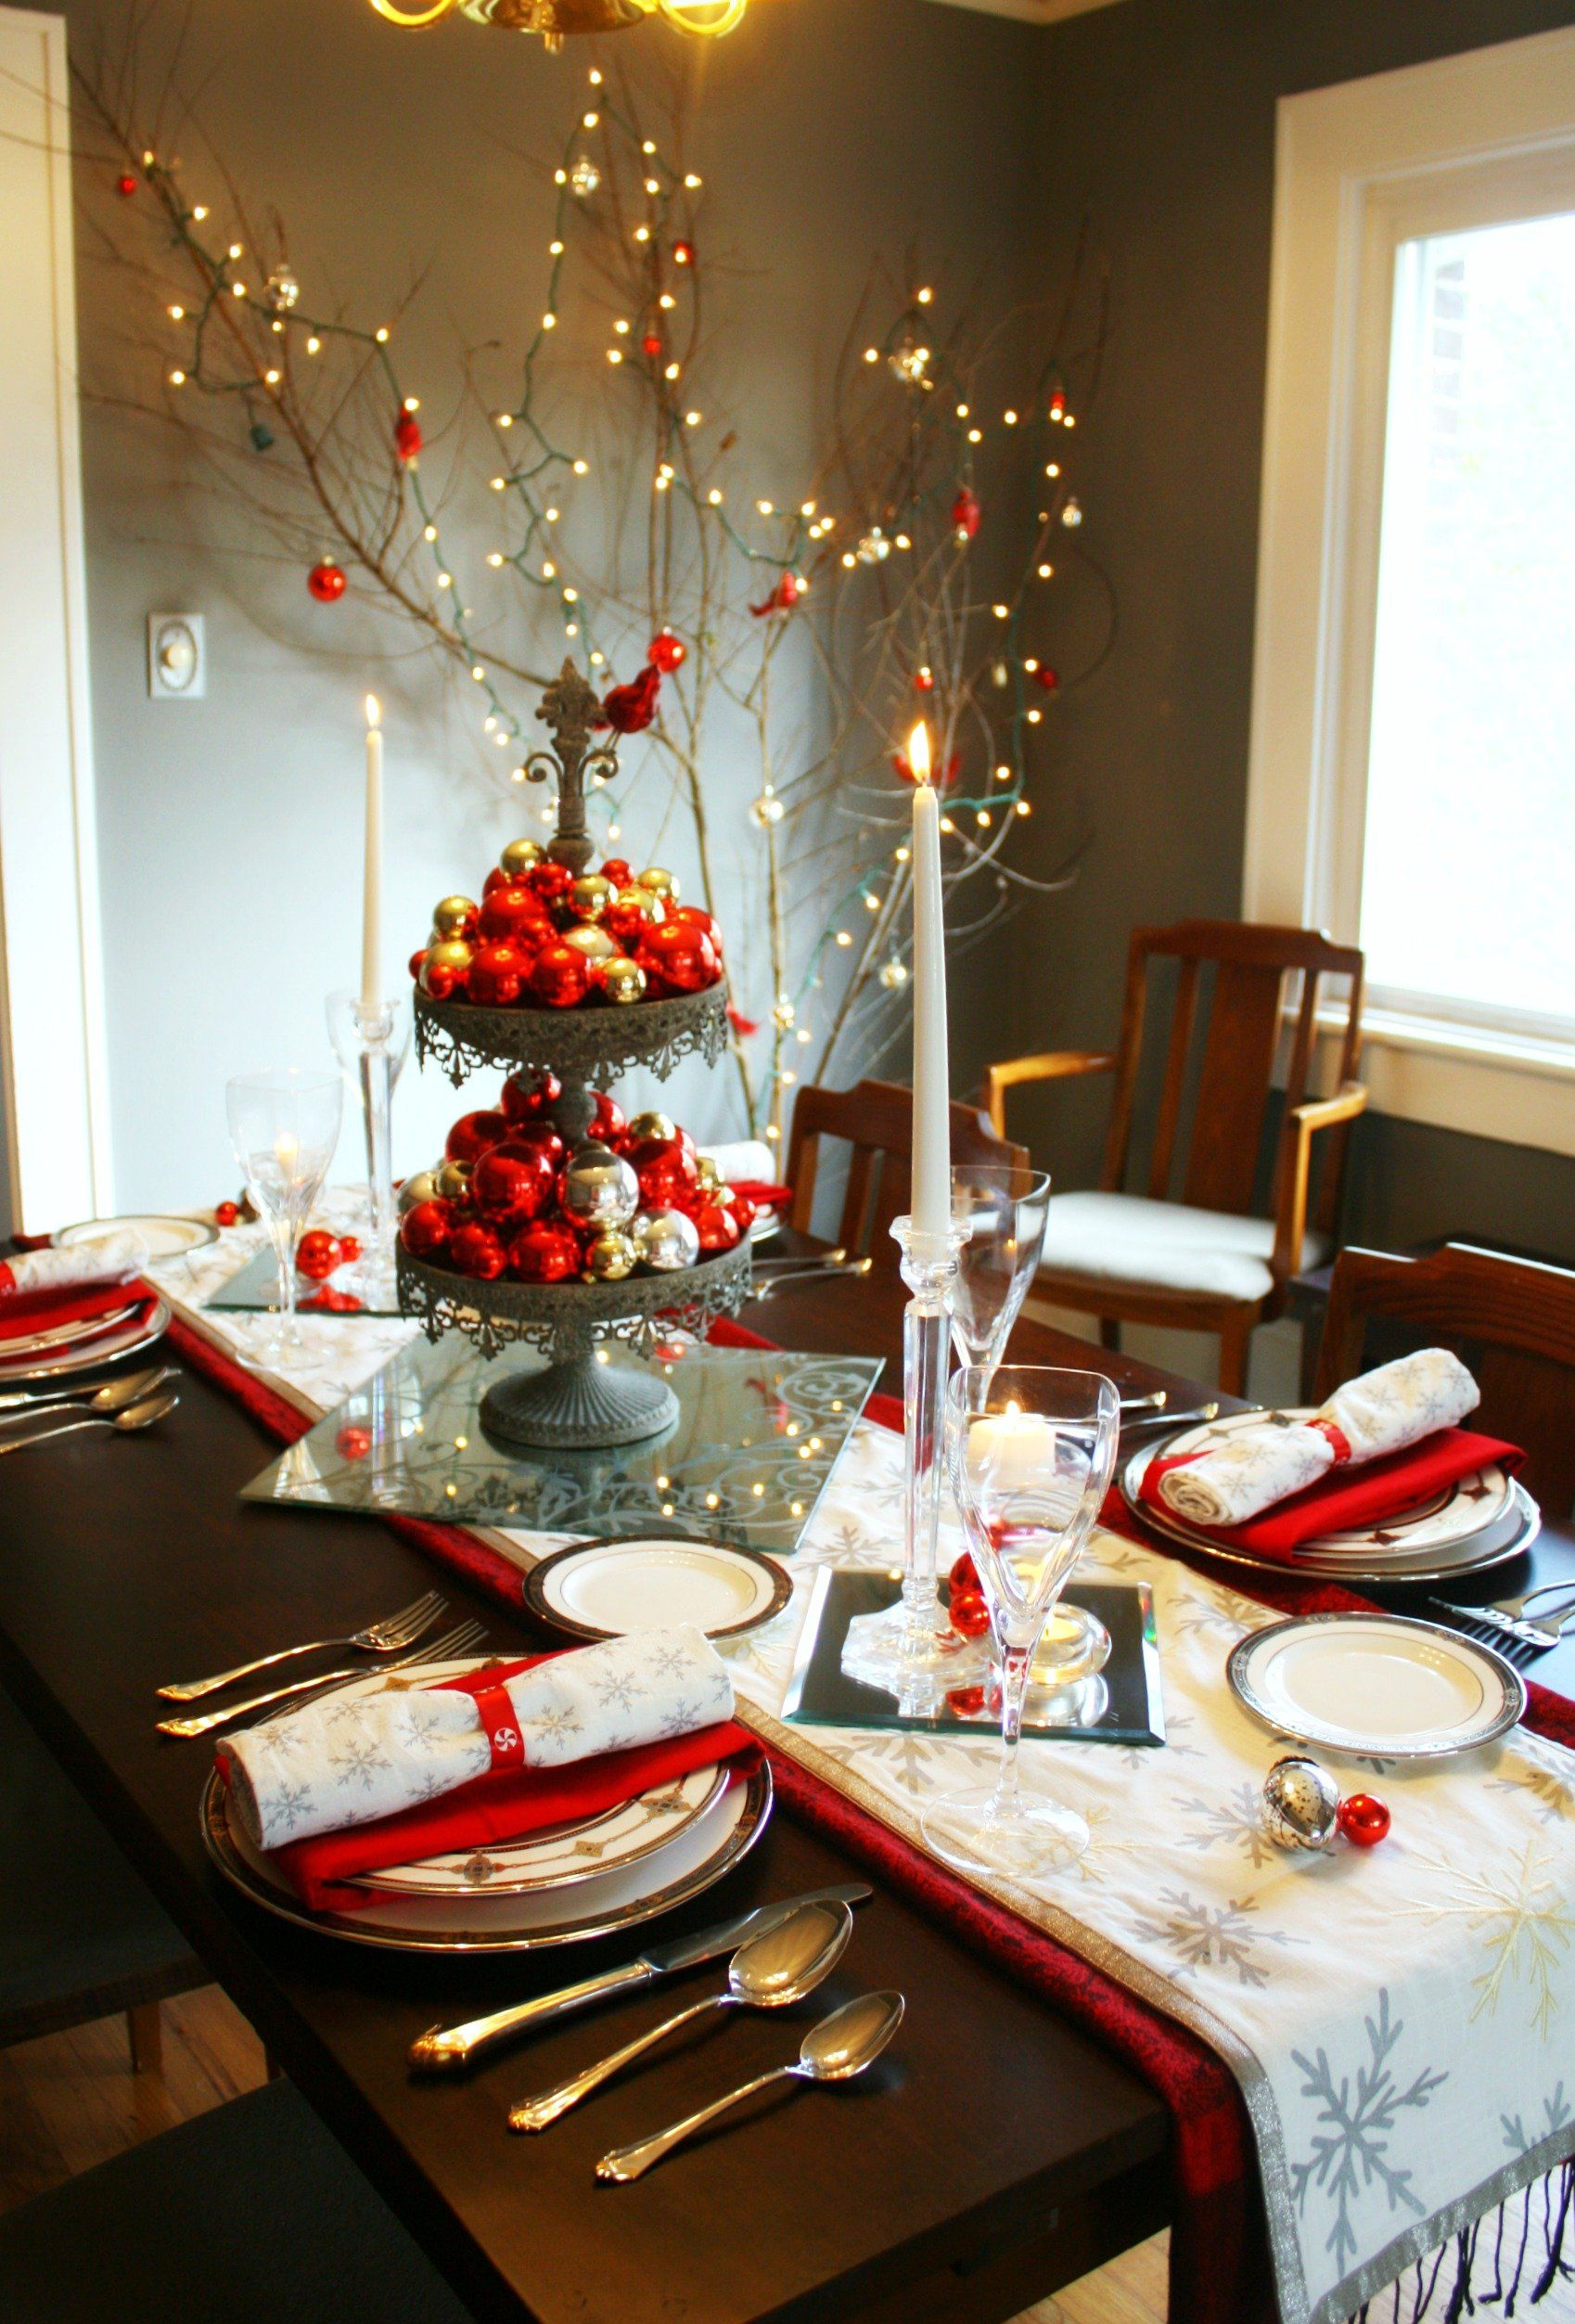 Christmas Decorations Simple Ideas Of Elegant Christmas Table Decorations With Gray Color Metal Display Pallete And Red Gold Silver C Weihnachtstisch Weihnachtstisch Dekoration Und Tischdekoration